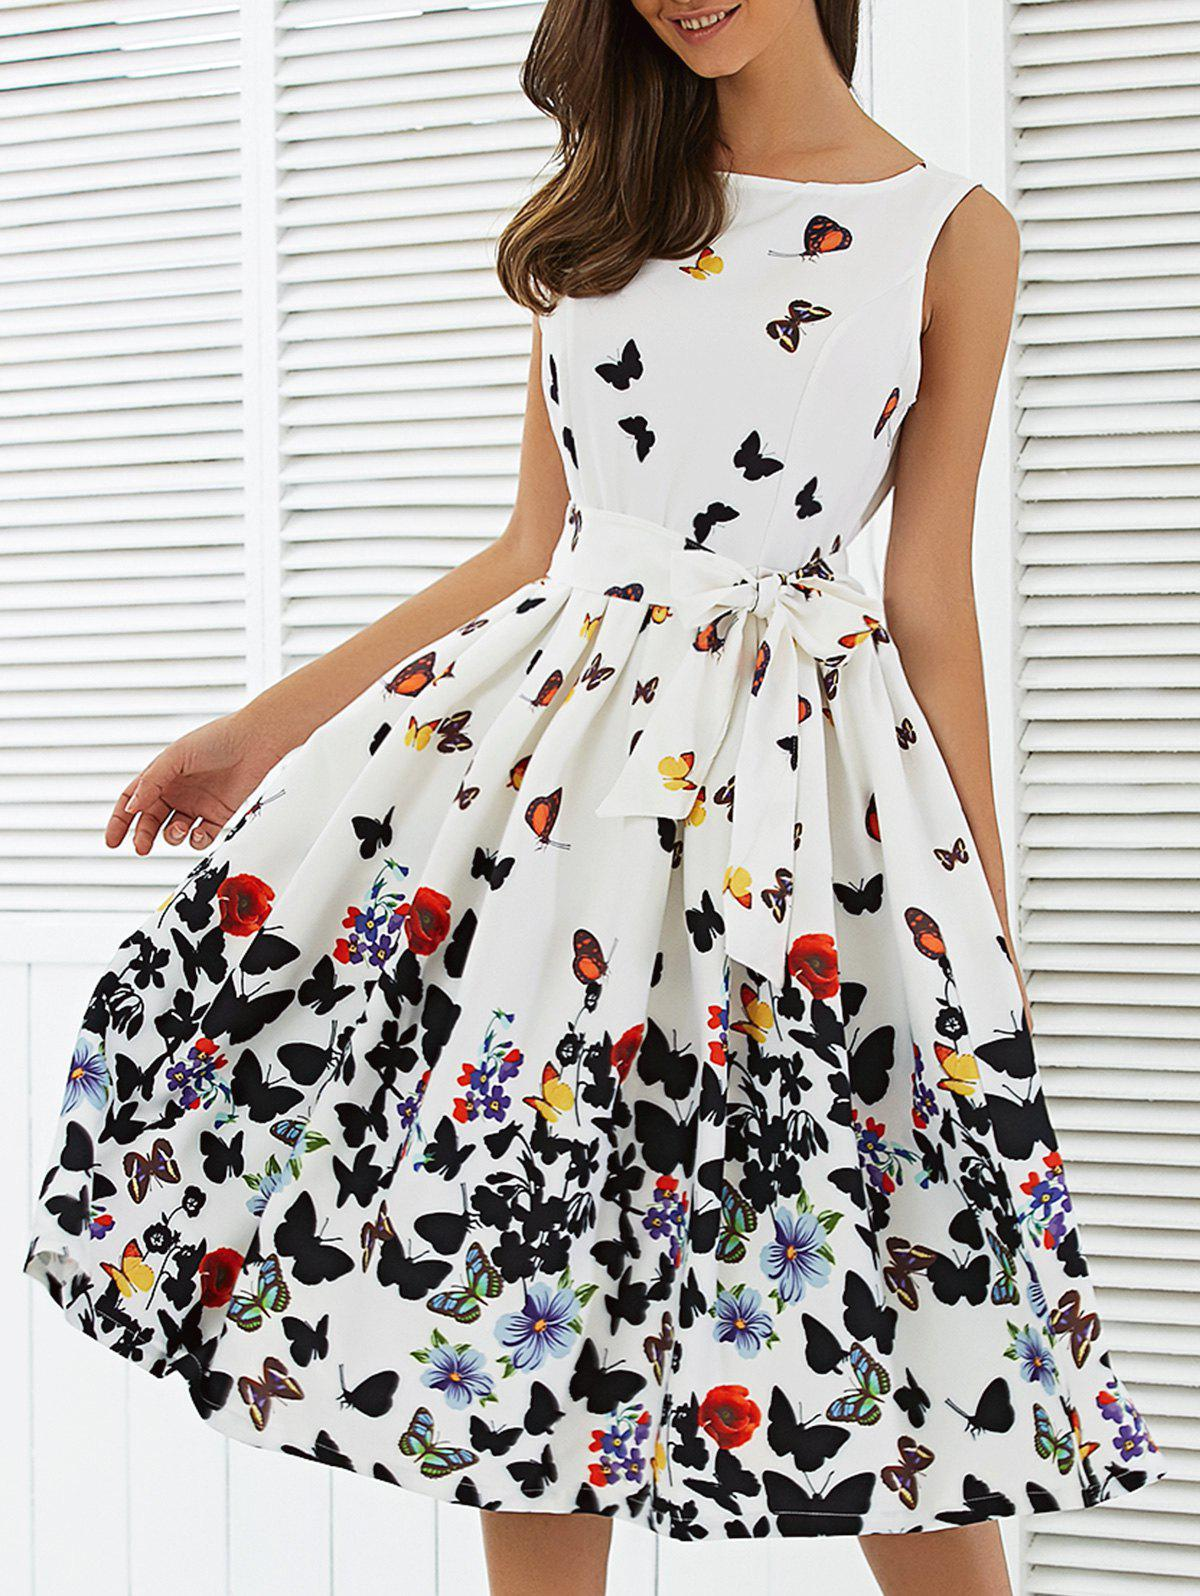 Sleeveless Floral Print Self Tie A Line Dress pse 2200